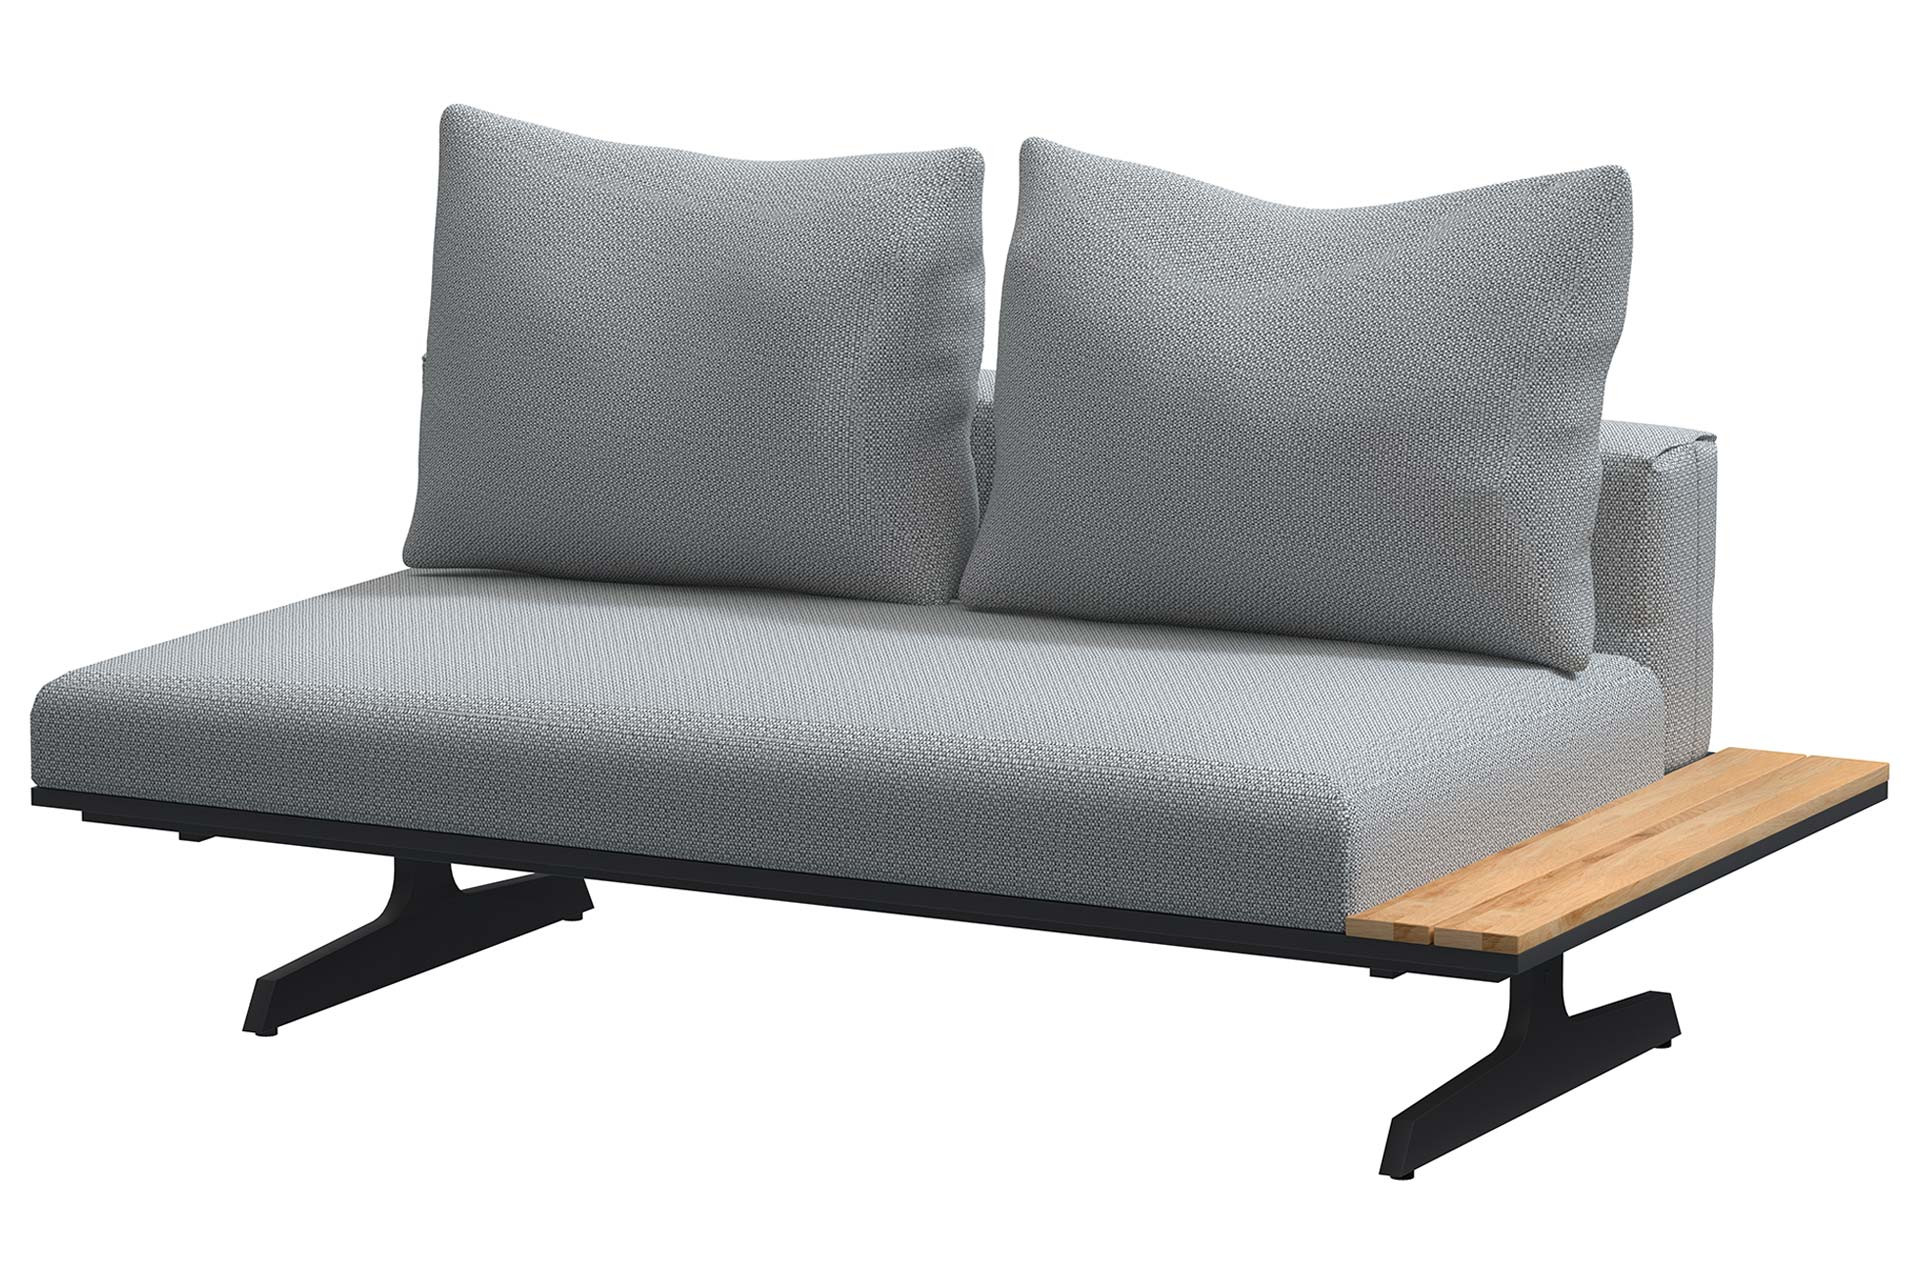 Endless multi concept Anthracite bench and chaise lounge 172 x 95 cm.